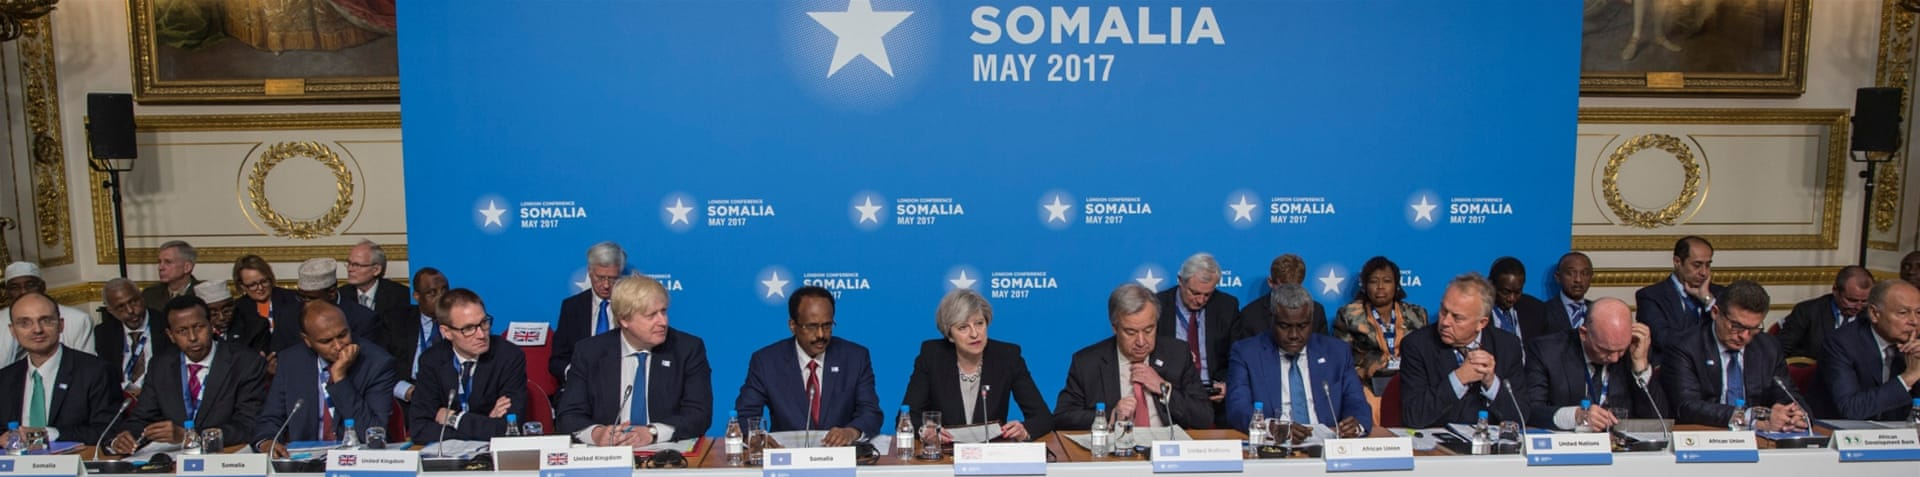 Farmajo co-chaired the conference on Somalia in UK's capital, London [Jack Hill/Reuters]